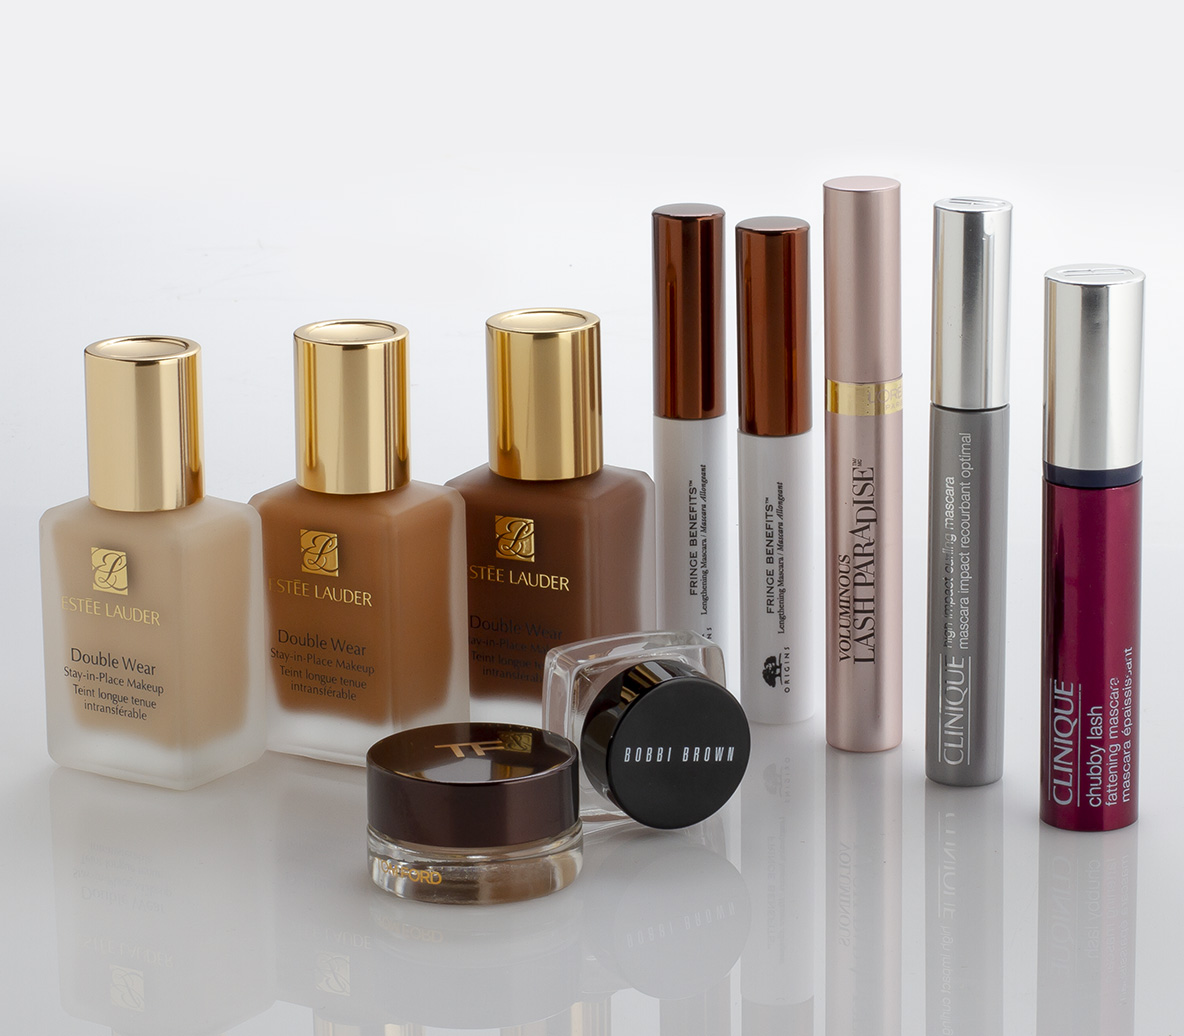 Skin Care Makeup Fragrance